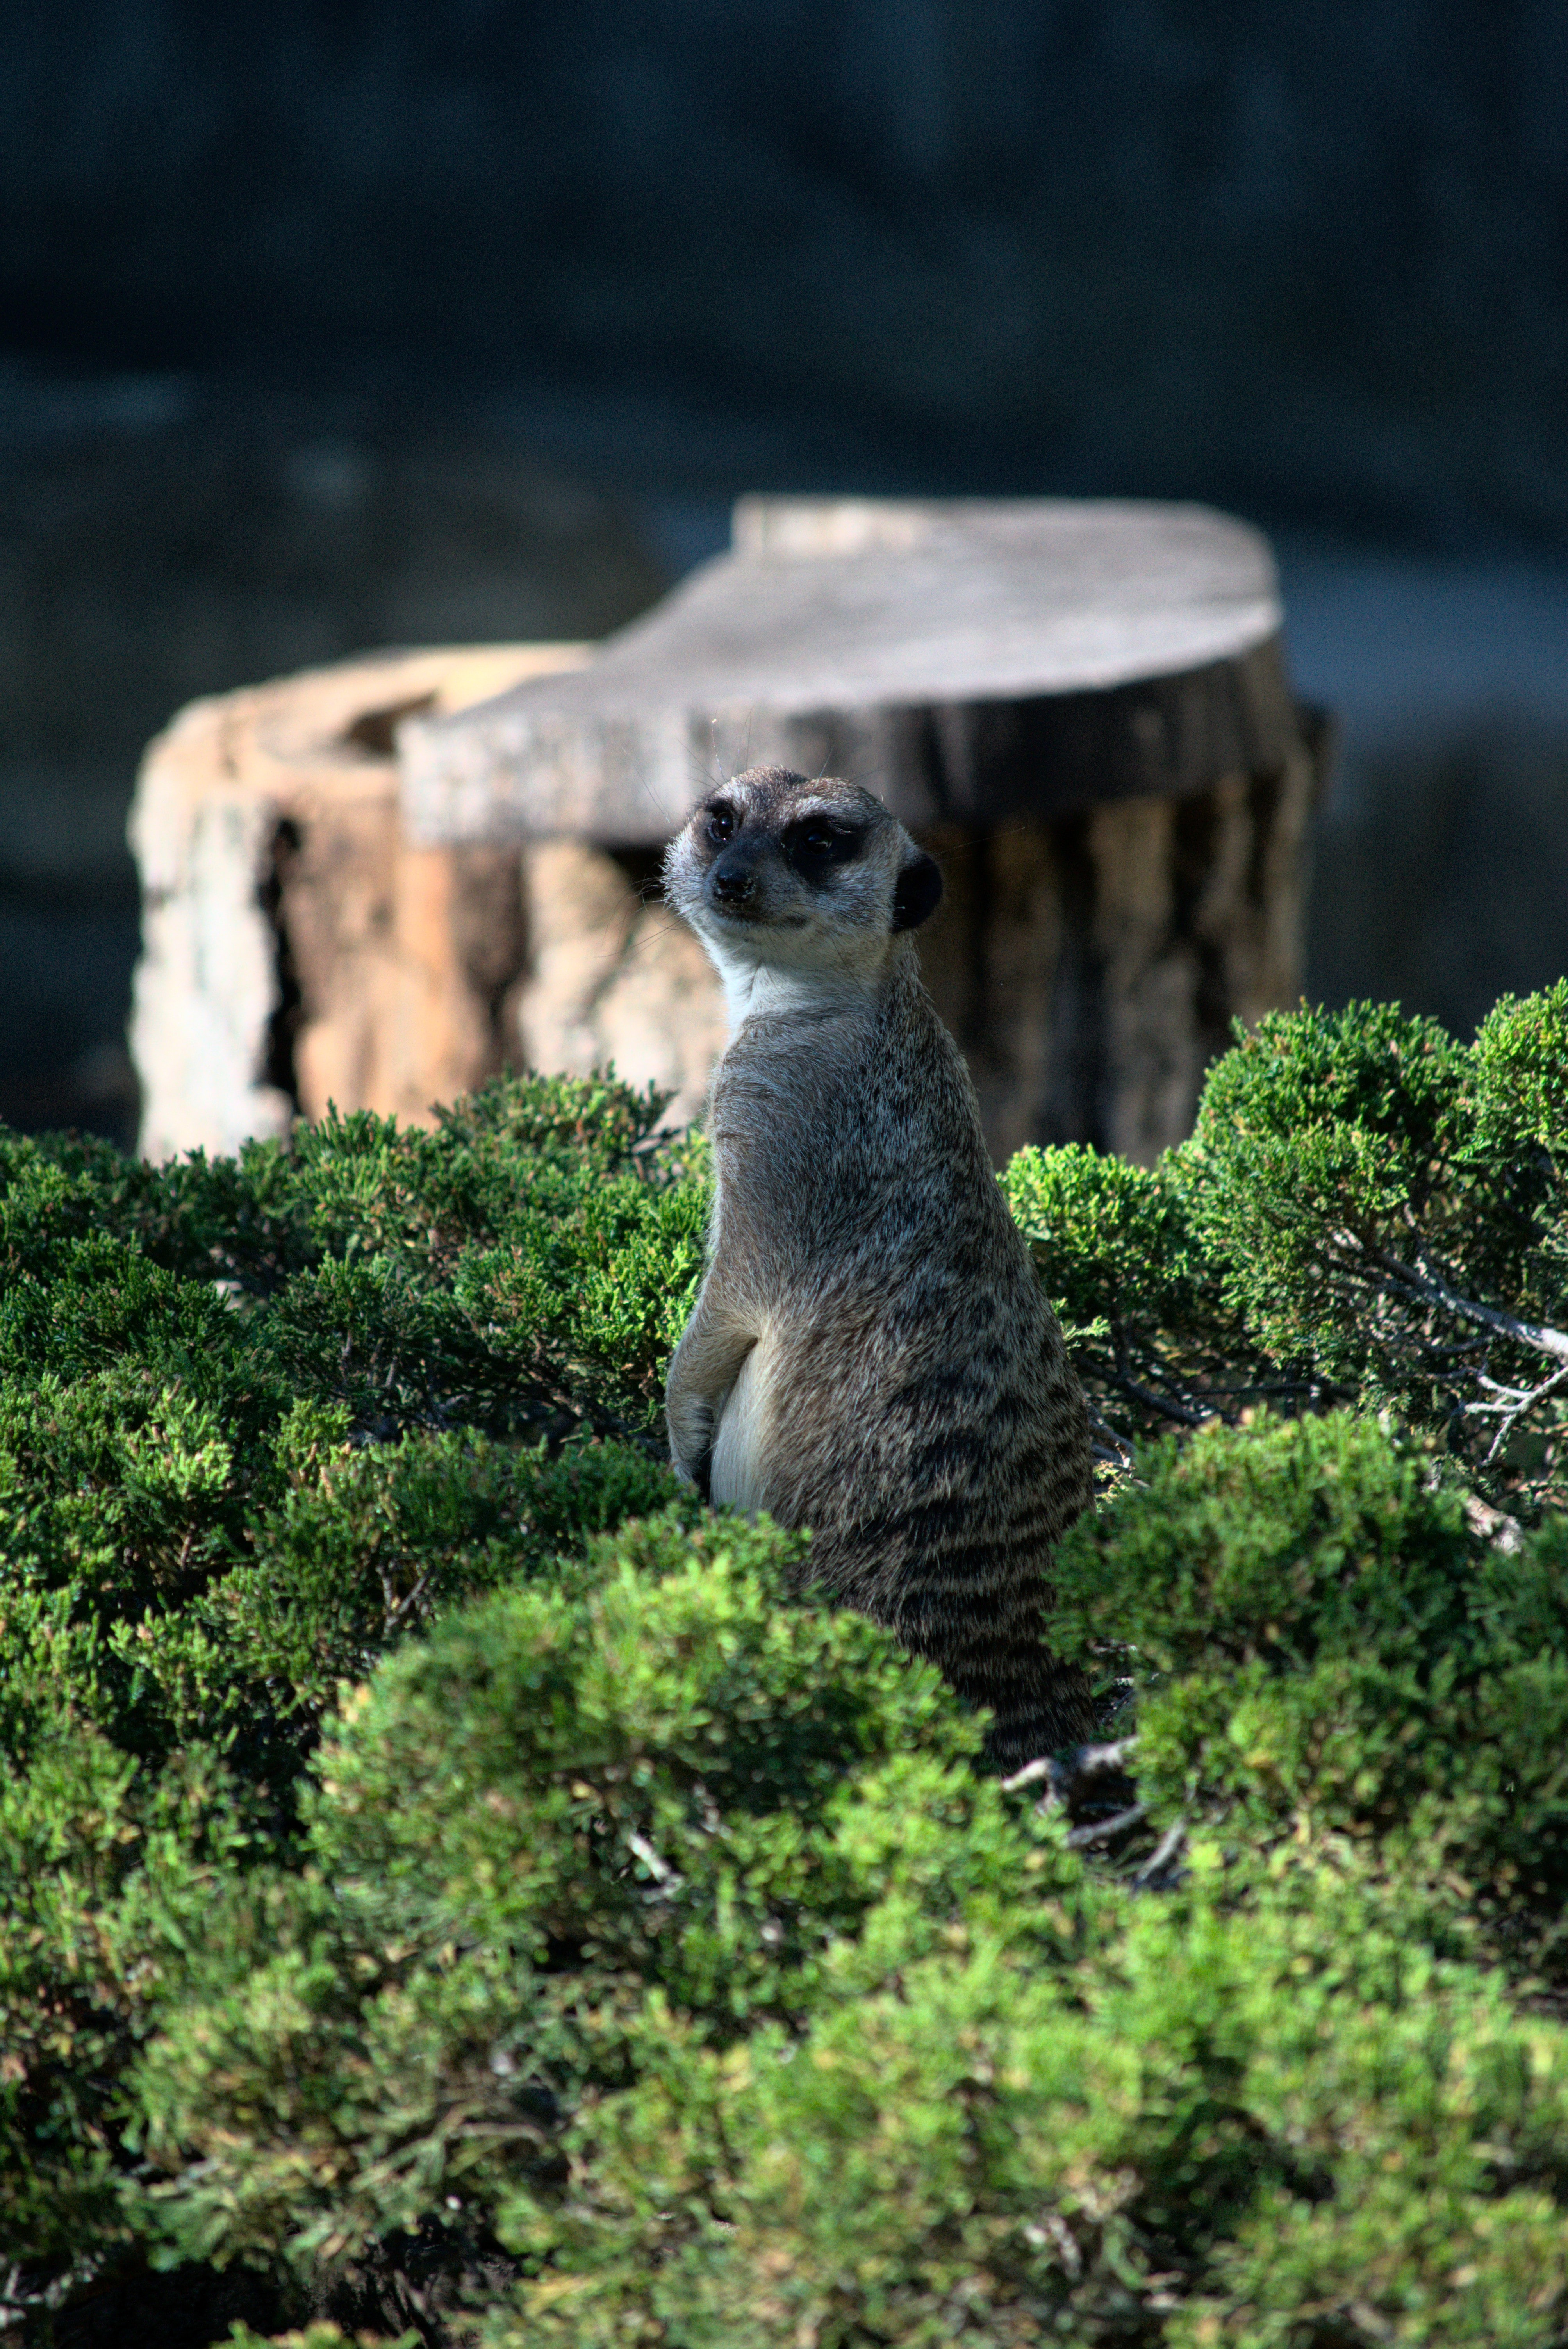 102861 download wallpaper Animals, Meerkat, Surikat, Animal, Sight, Opinion, Funny, Bush screensavers and pictures for free